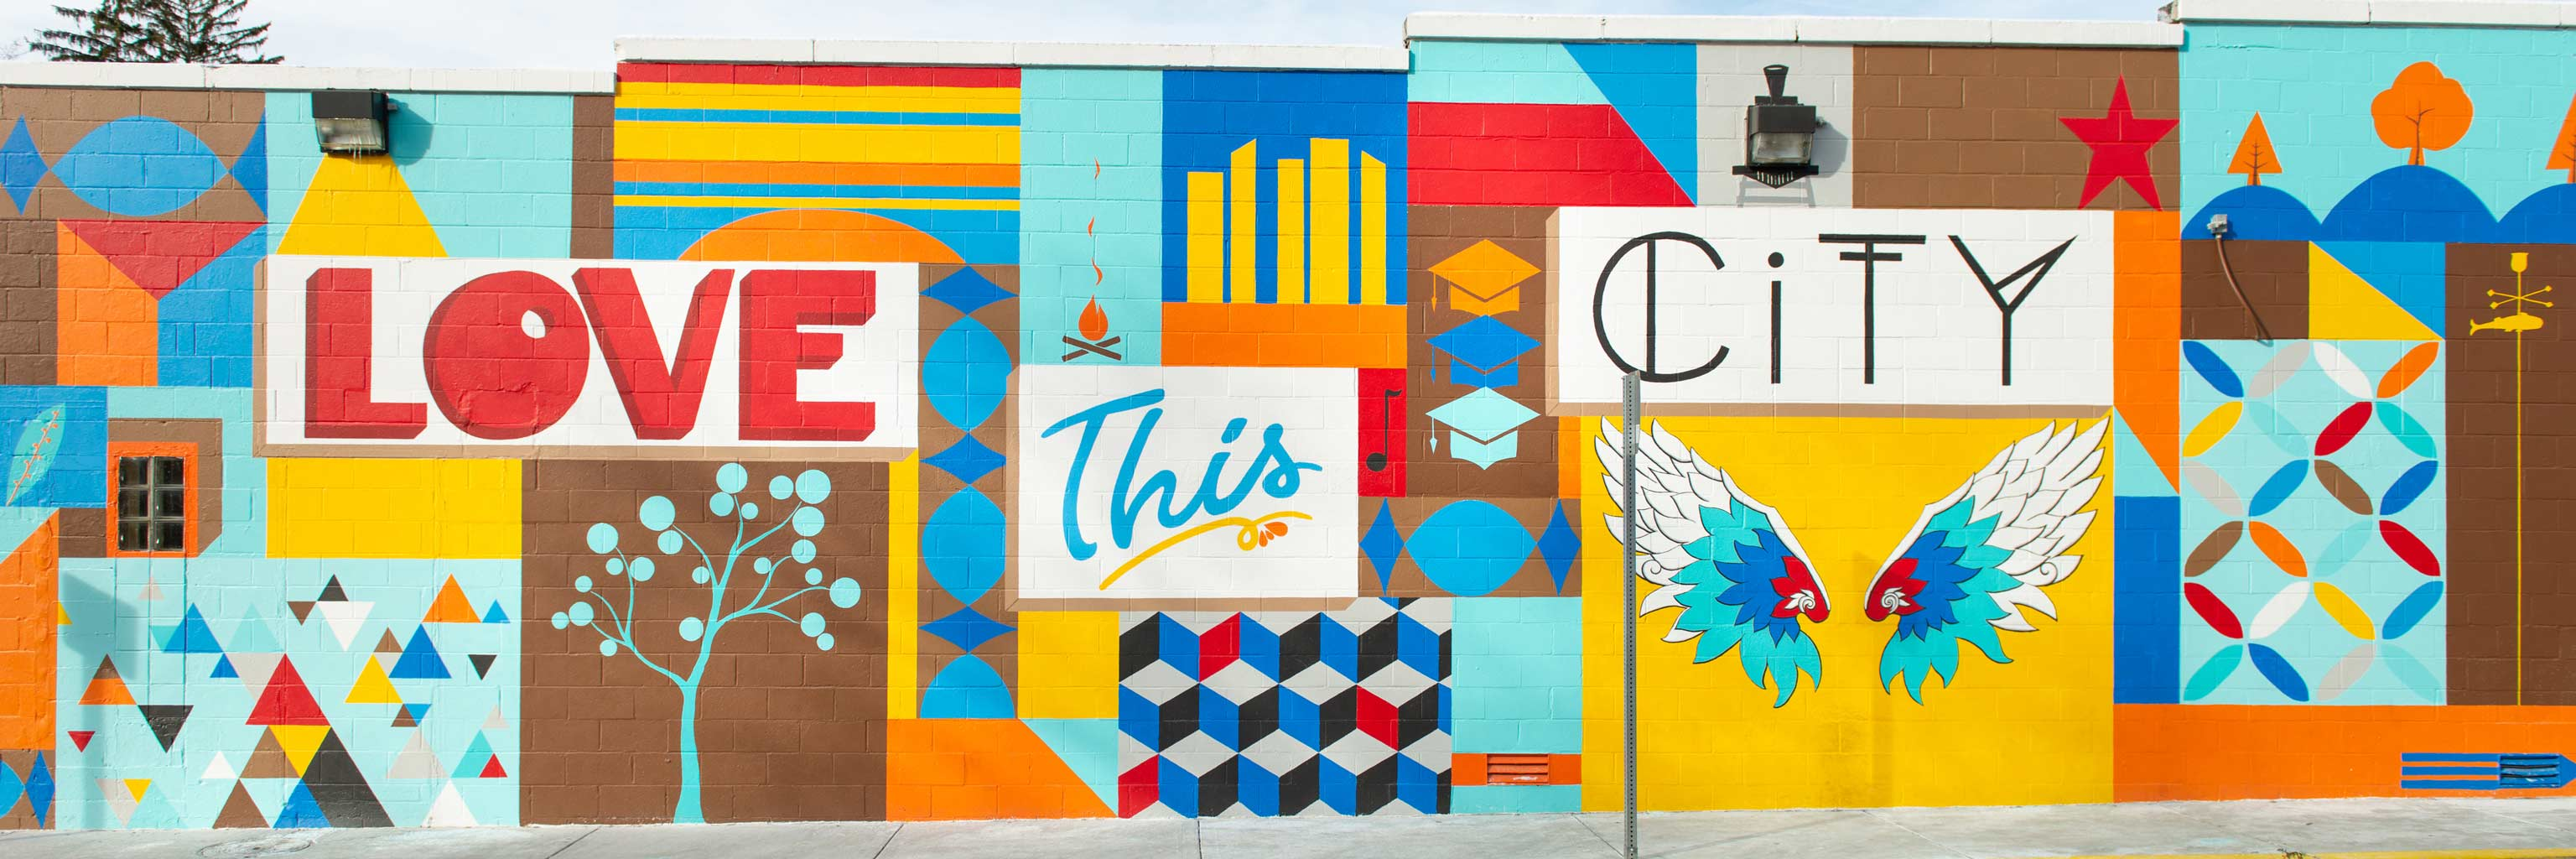 "The ""Love this city"" mural located in downtown Bloomington, Indiana."